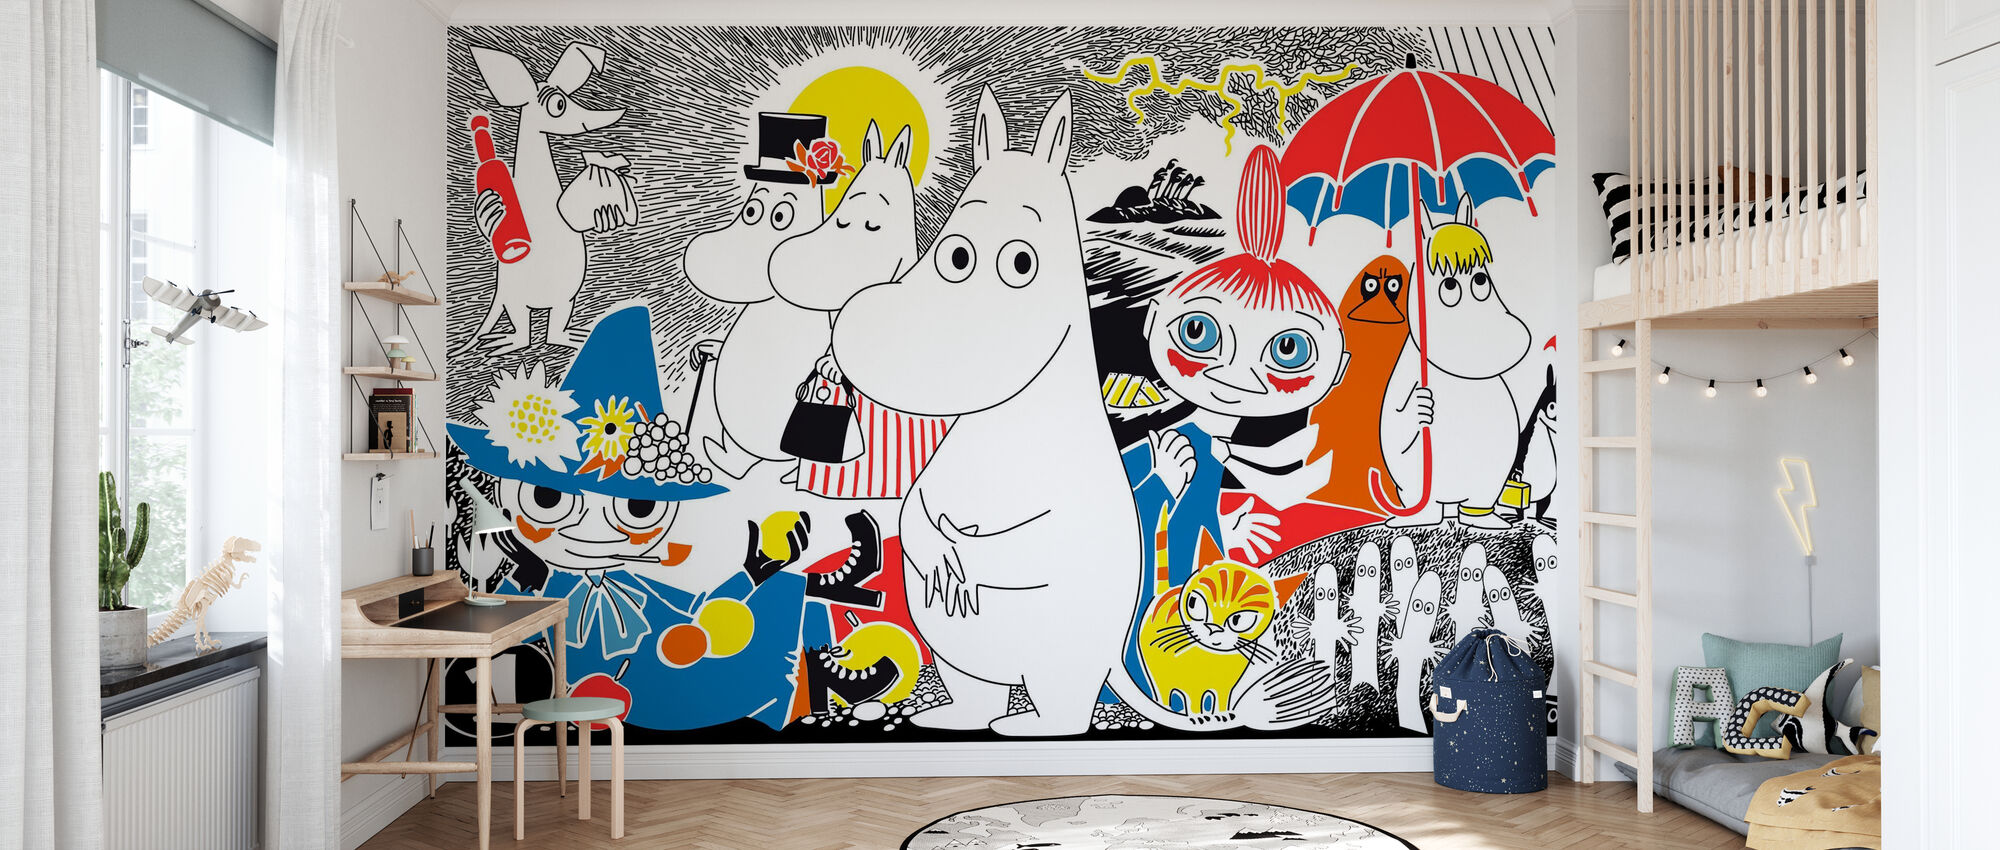 Moomin - Comic Book 1 - Wallpaper - Kids Room